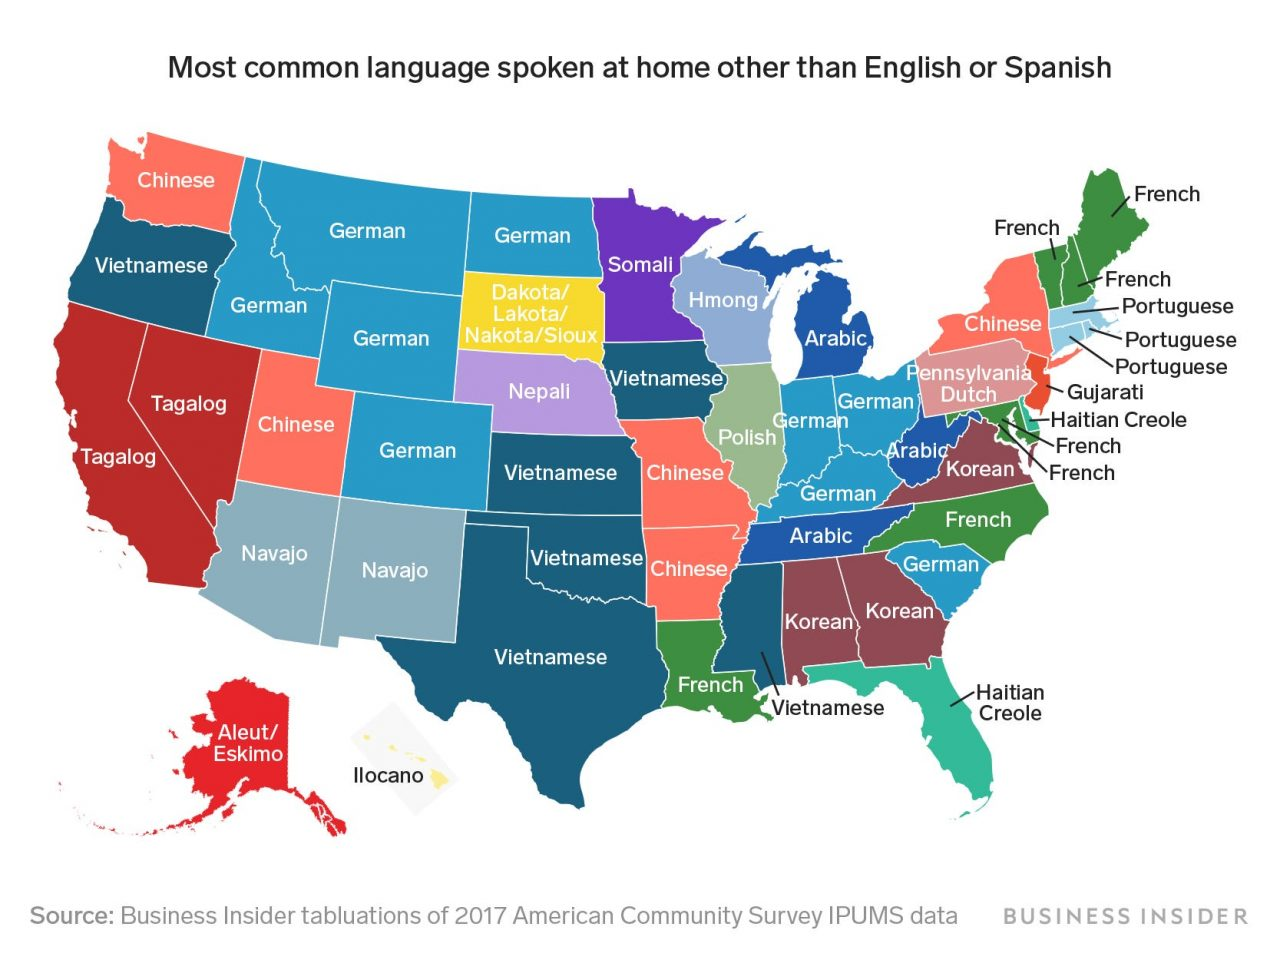 Most Common Languages Spoken In The Usa Other Than English Or